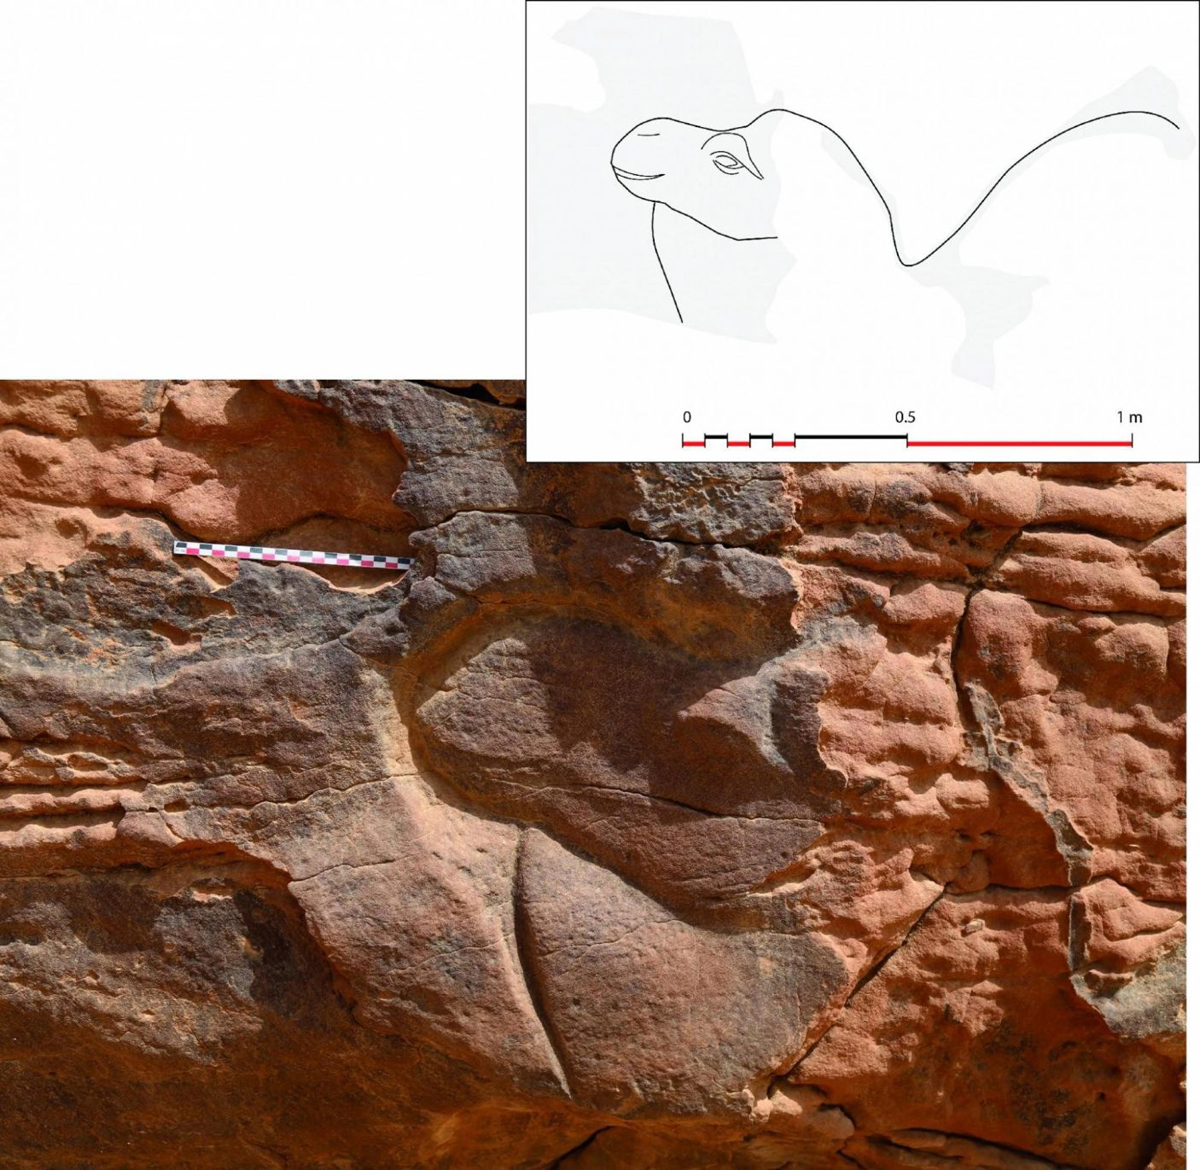 Discovery of life size camel reliefs in Saudi Arabia